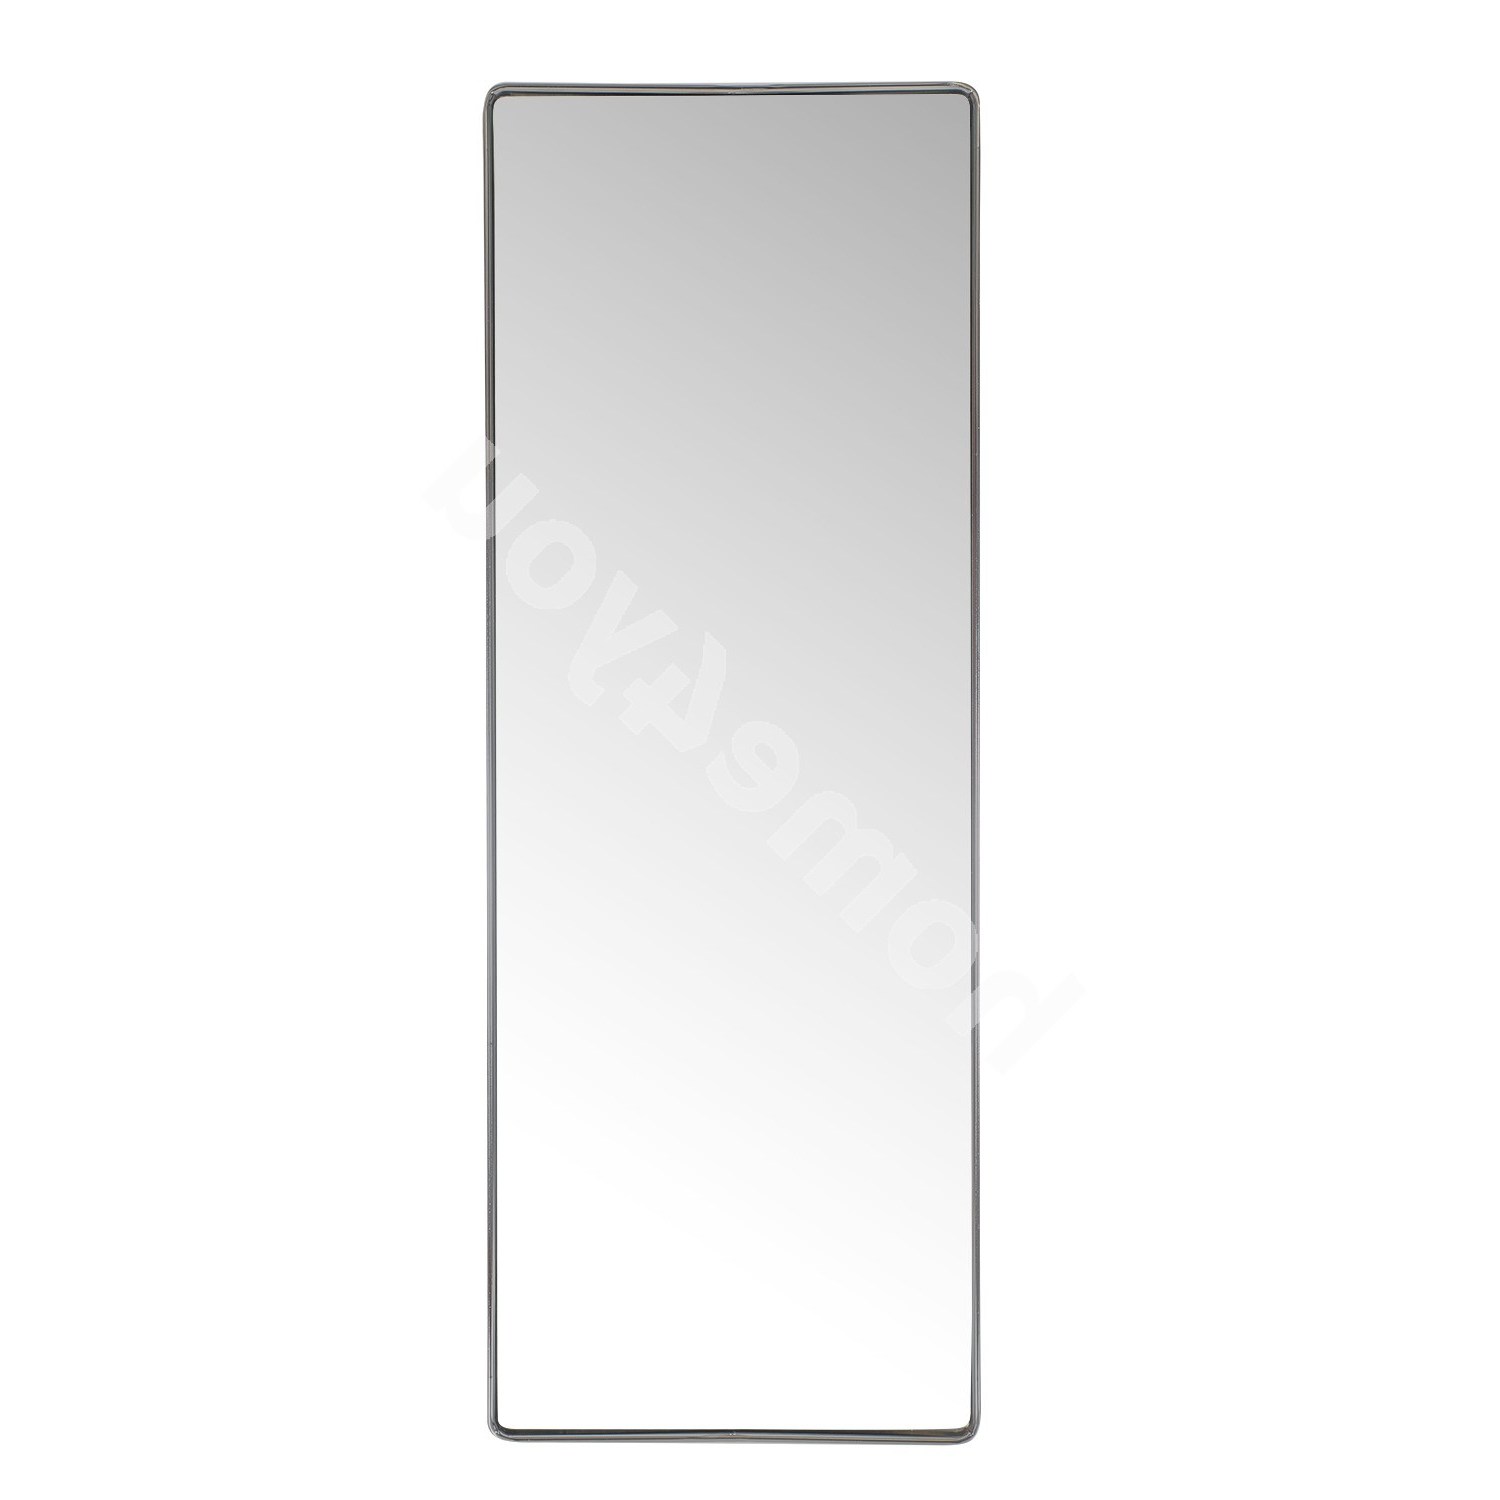 Trendy Wall Mirror Crystal With Safety Film 36x100x3,5cm, Chromed Steel Frame Pertaining To Safety Wall Mirrors (View 8 of 20)